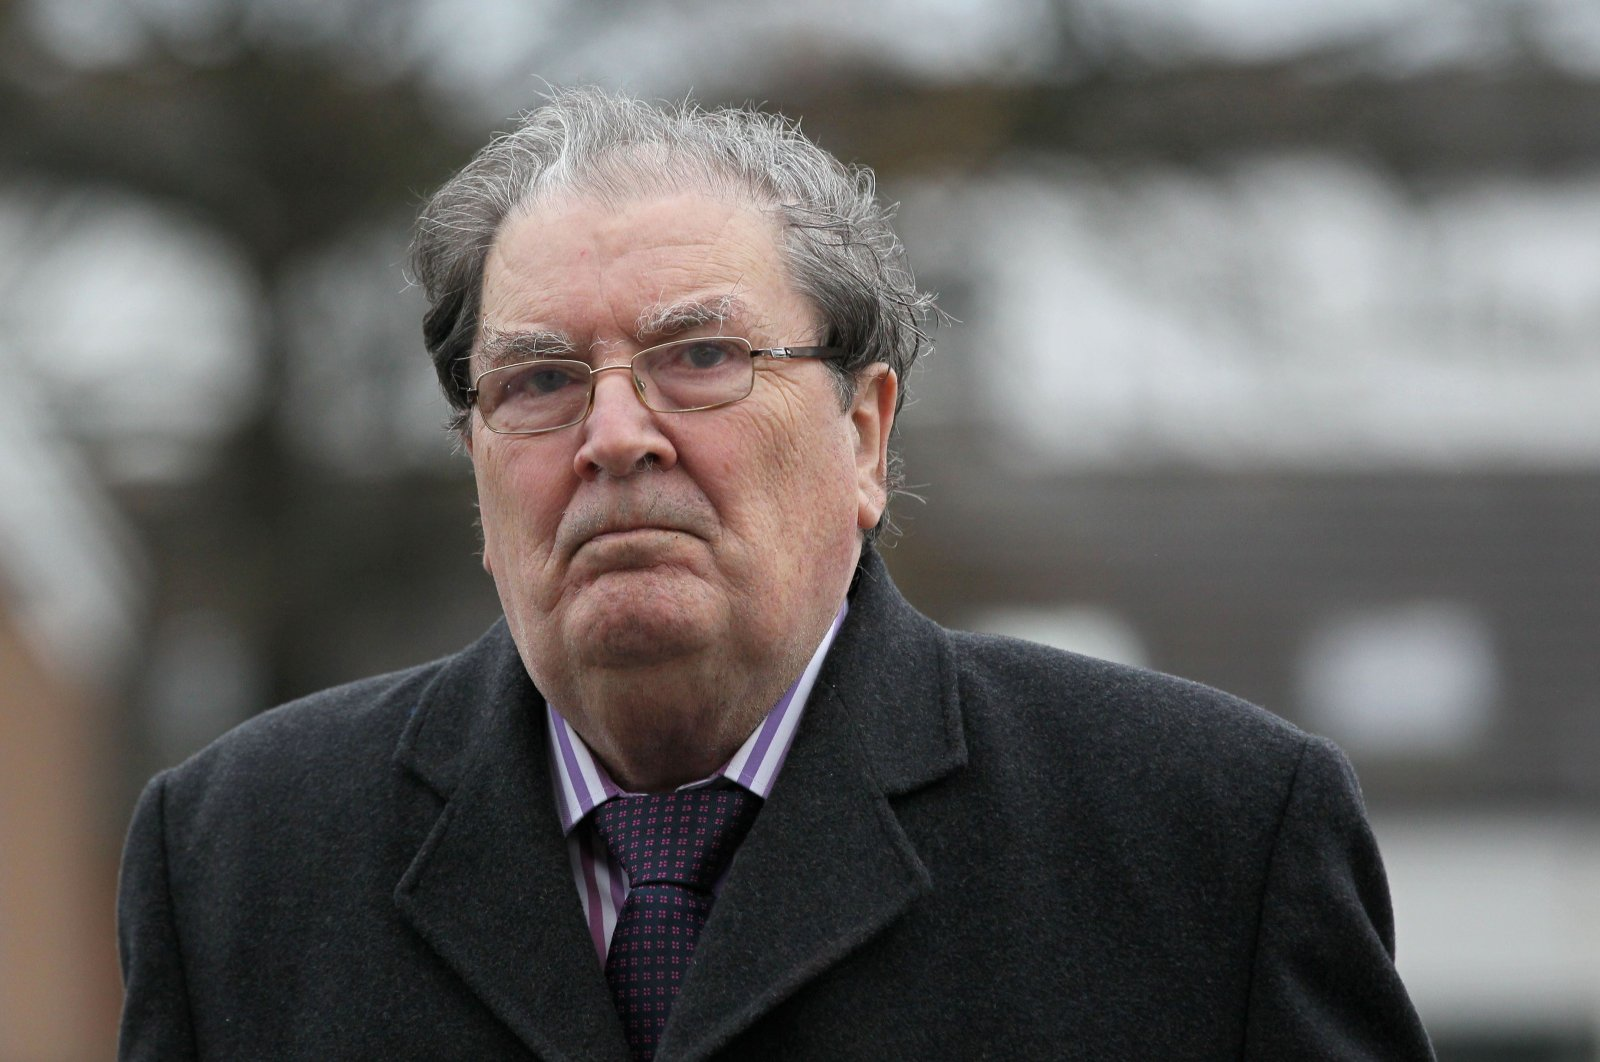 In this Nov. 27, 2013 file photo, former Northern Ireland politician and Joint 1998 Nobel Peace Prize Winner, John Hume, attends the funeral service for Irish priest Father Alec Reid at Clonard Monastery in Belfast, Northern Ireland. (AFP Photo)